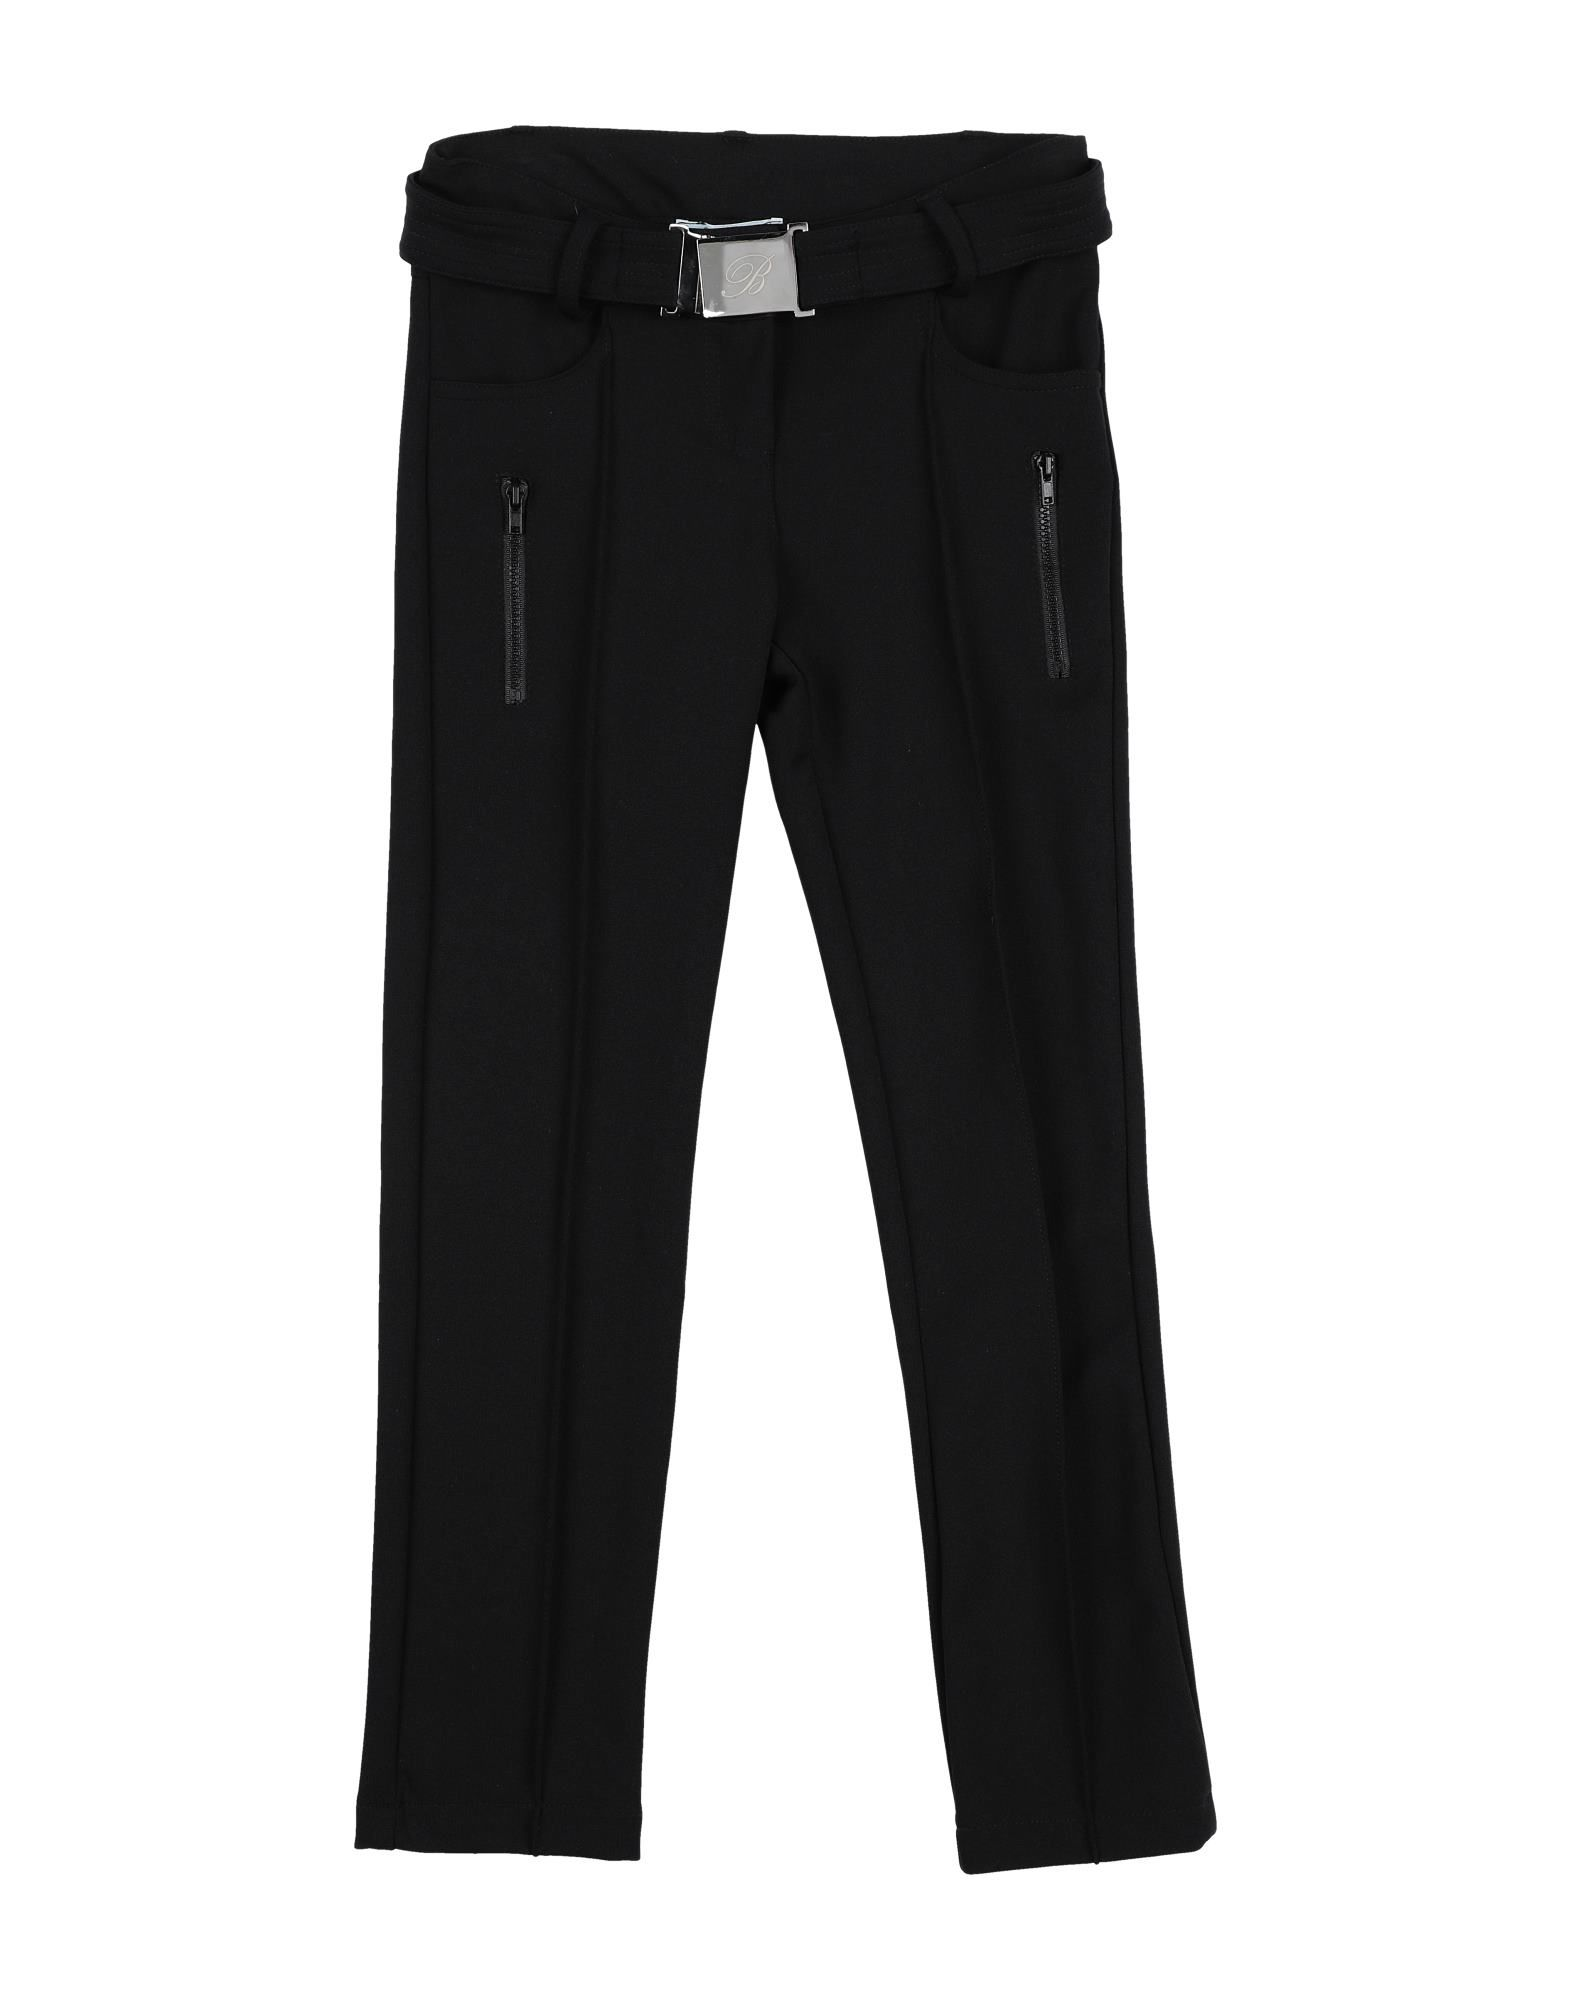 Miss Blumarine Kids' Casual Pants In Black